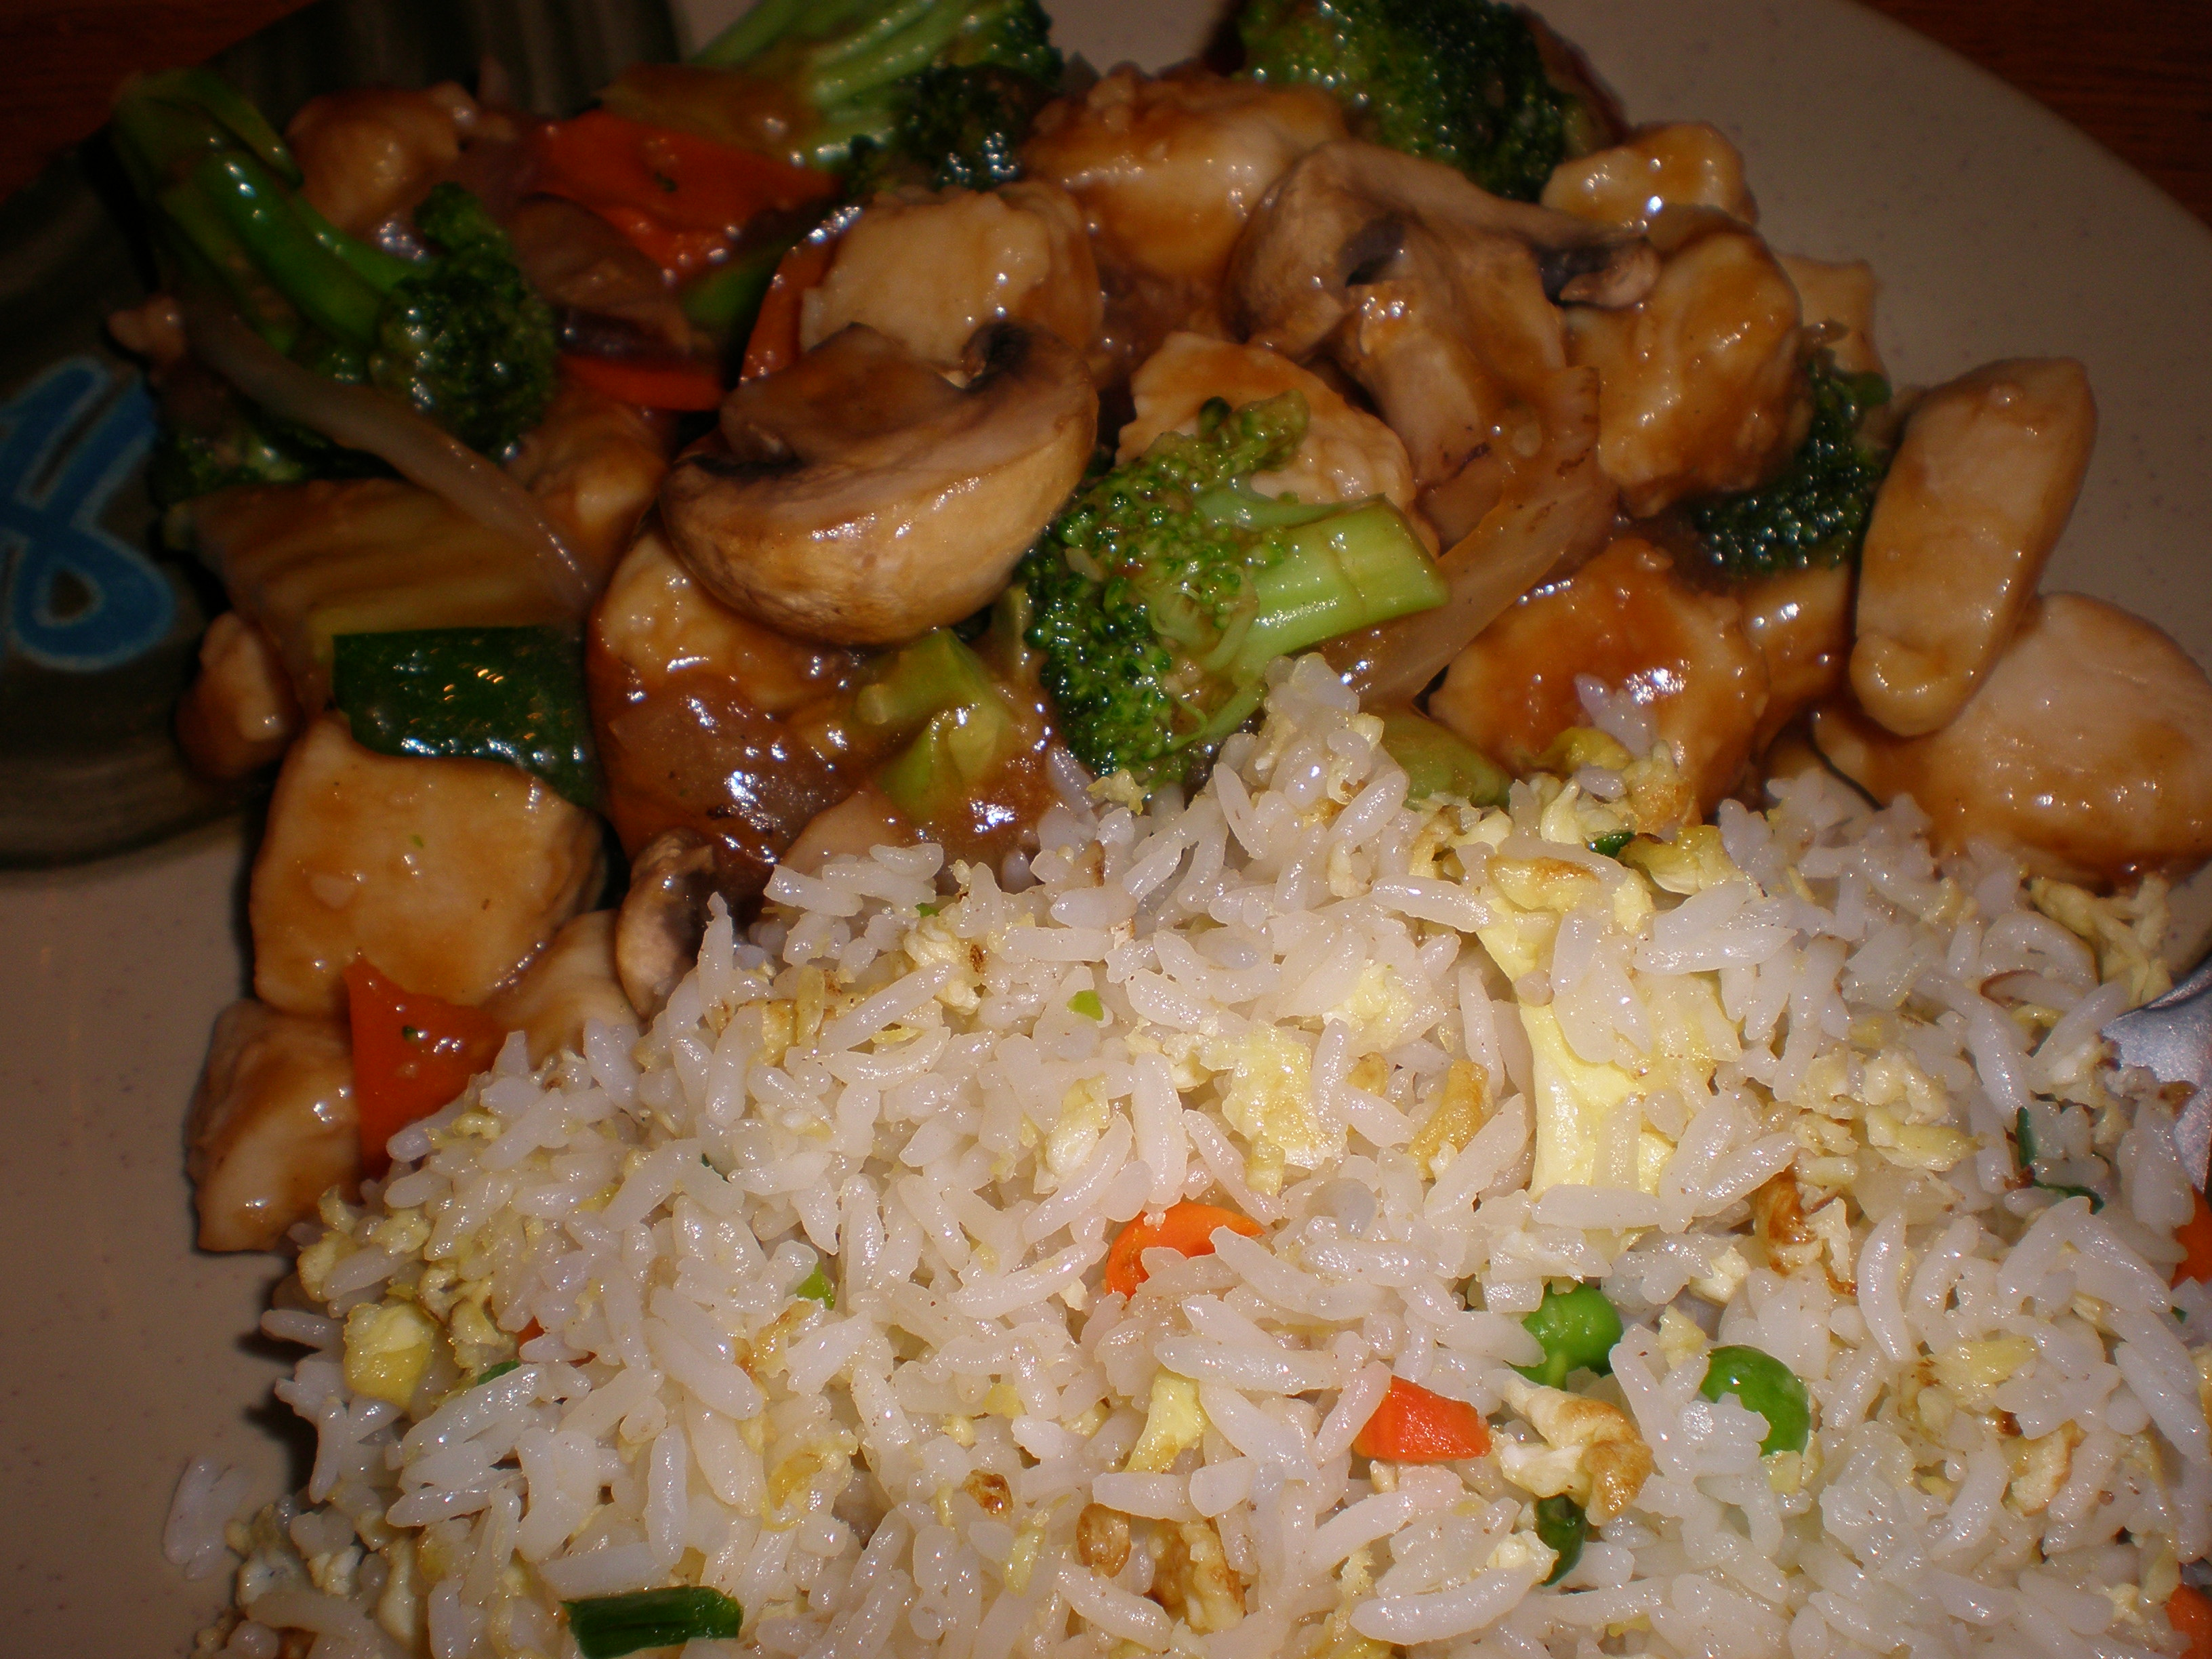 File:Ping SJ garlic chicken & fried rice.JPG - Wikipedia, the free ...